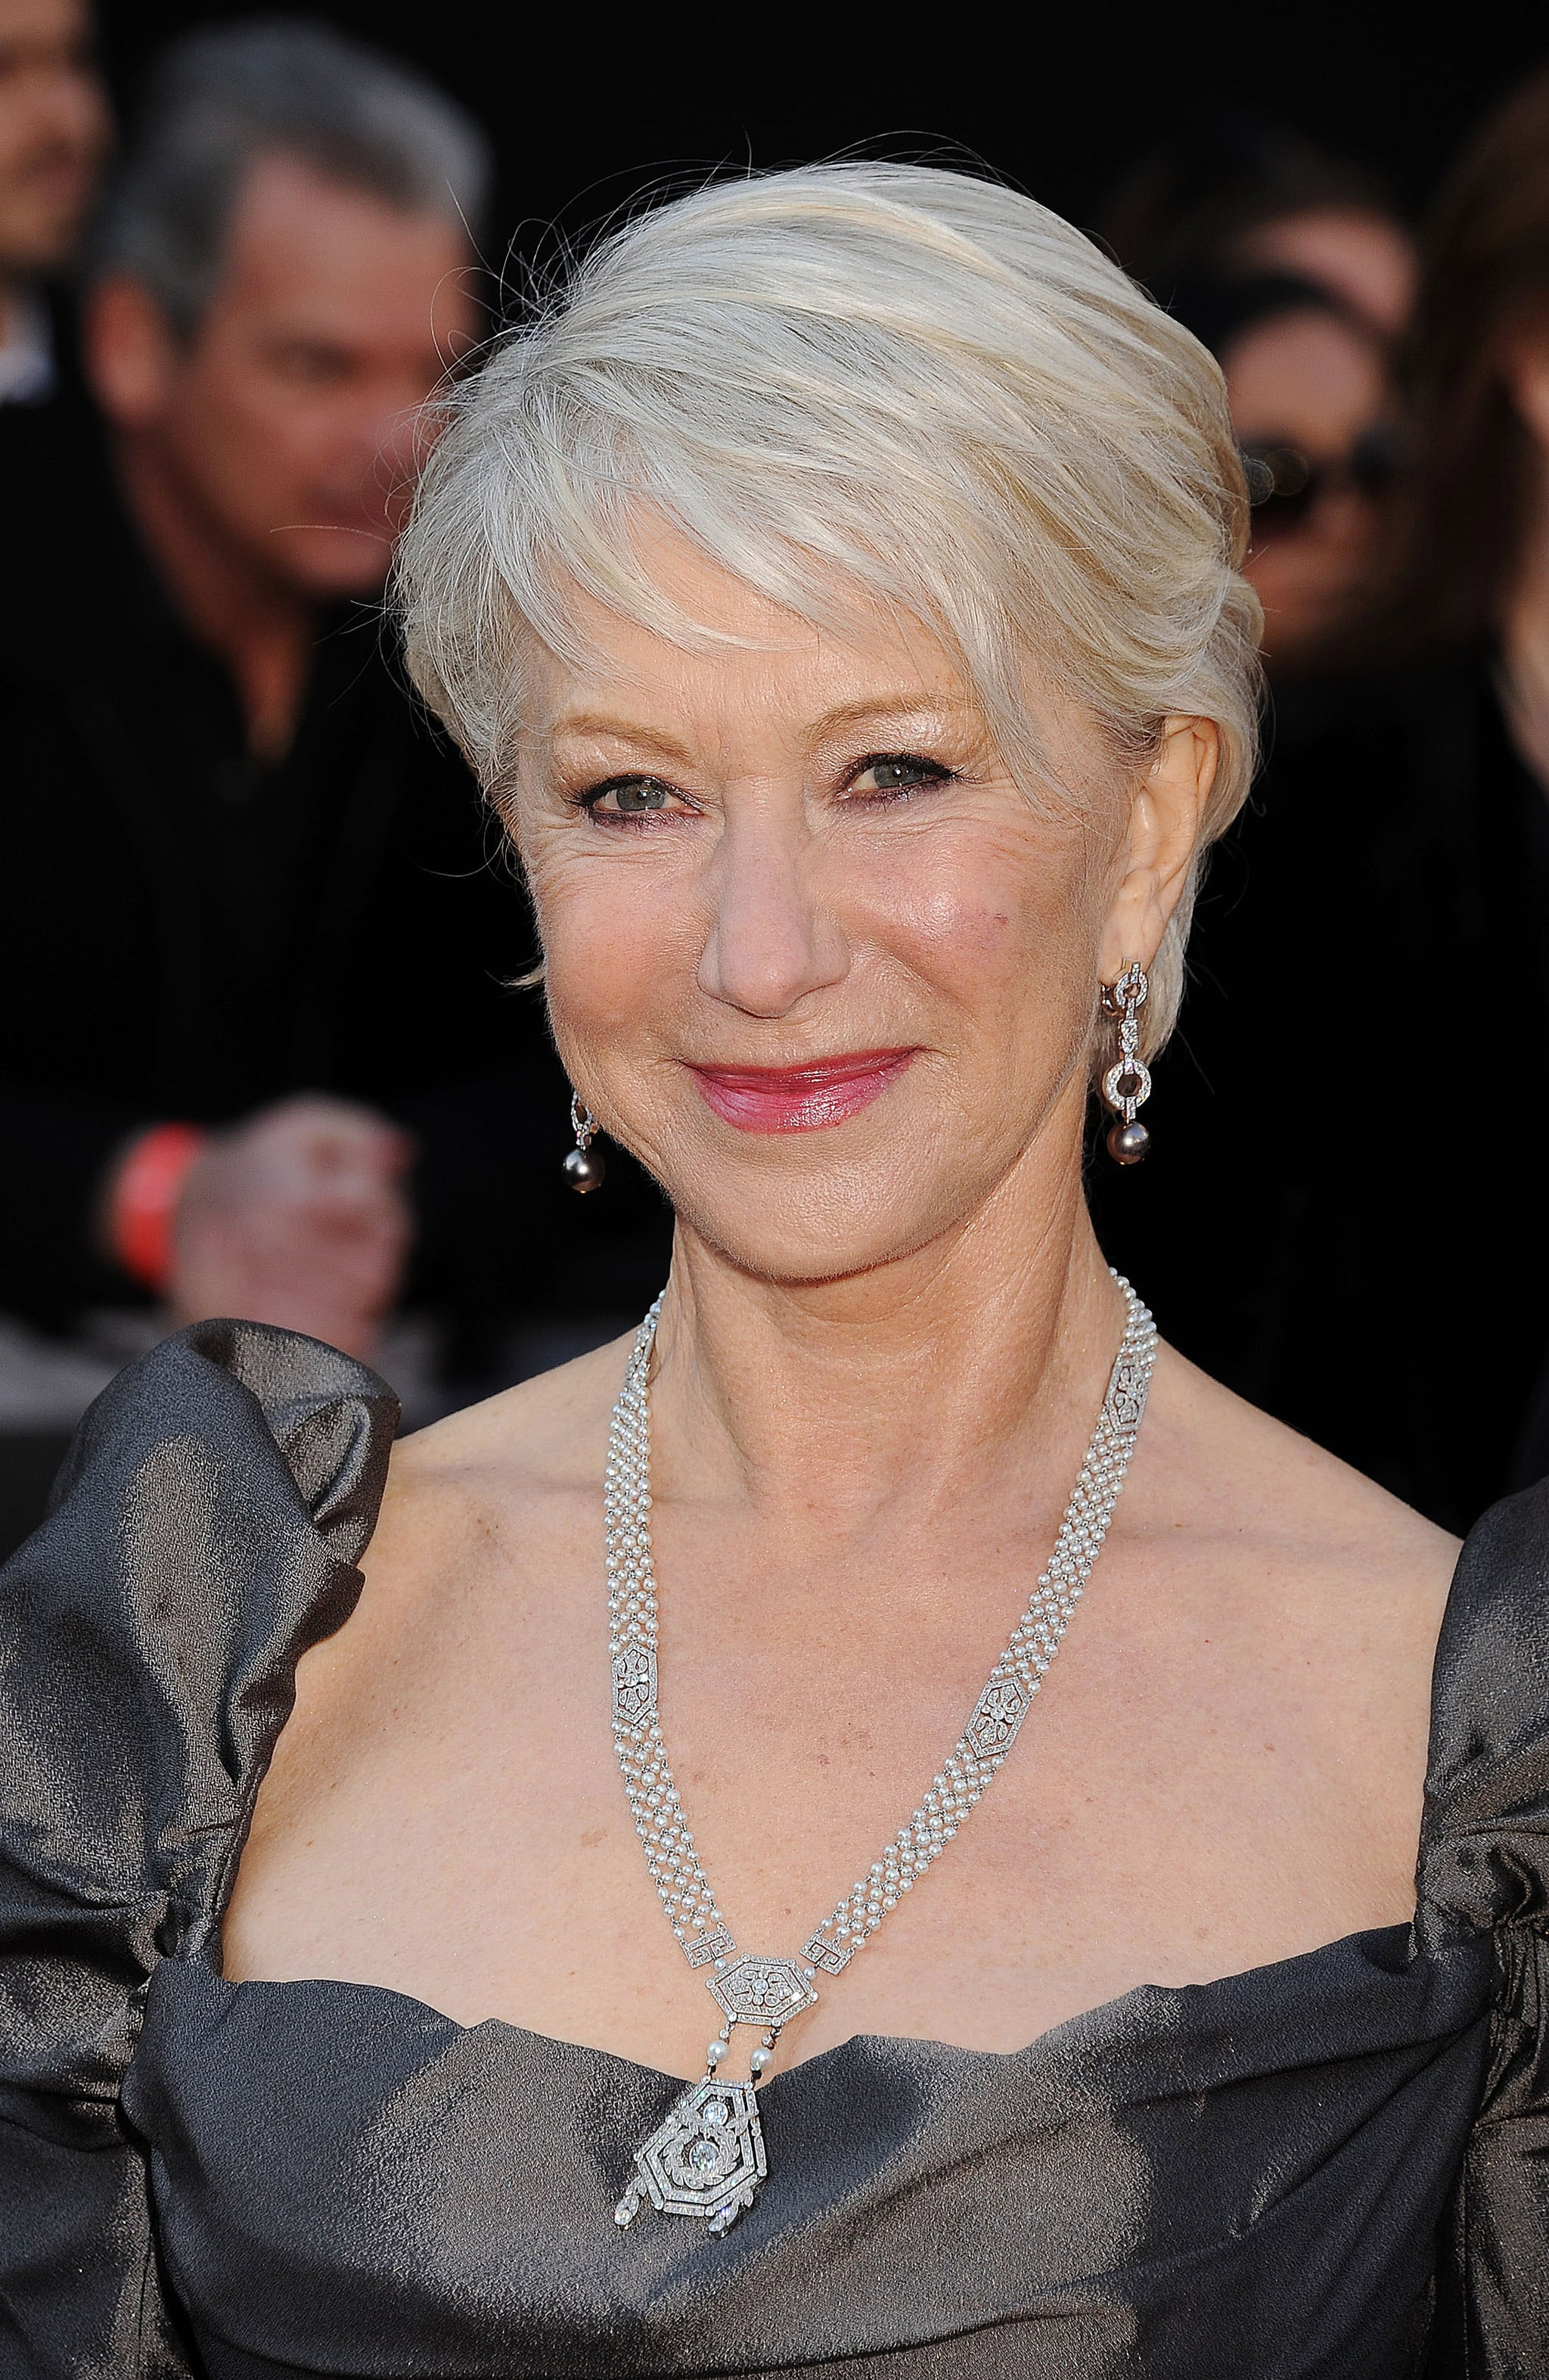 Helen Mirren arrives at the 83rd Annual Academy Awards held at the Kodak Theatre on February 27, 2011 in Hollywood, California.